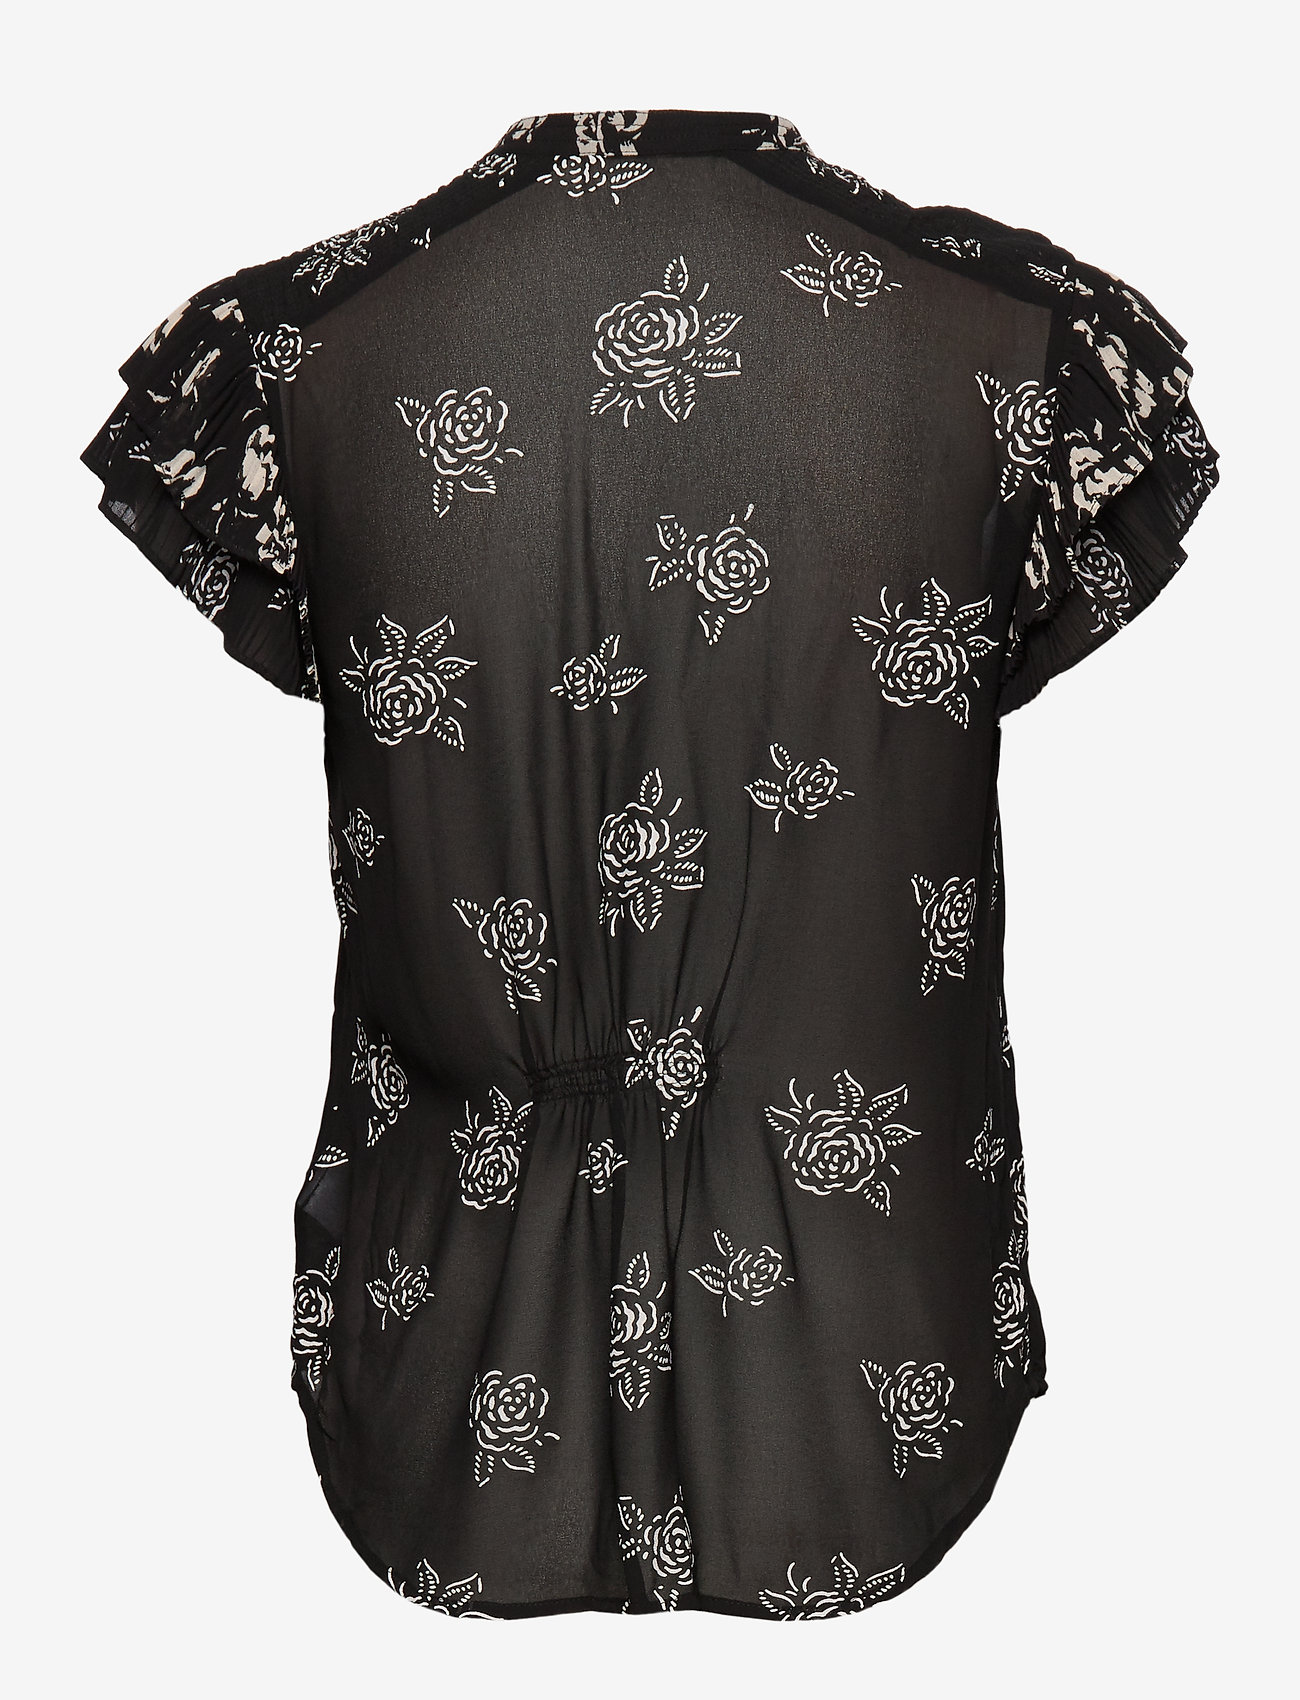 Rose-print Crepe Blouse (Black/white Flora) - Polo Ralph Lauren cLboTC